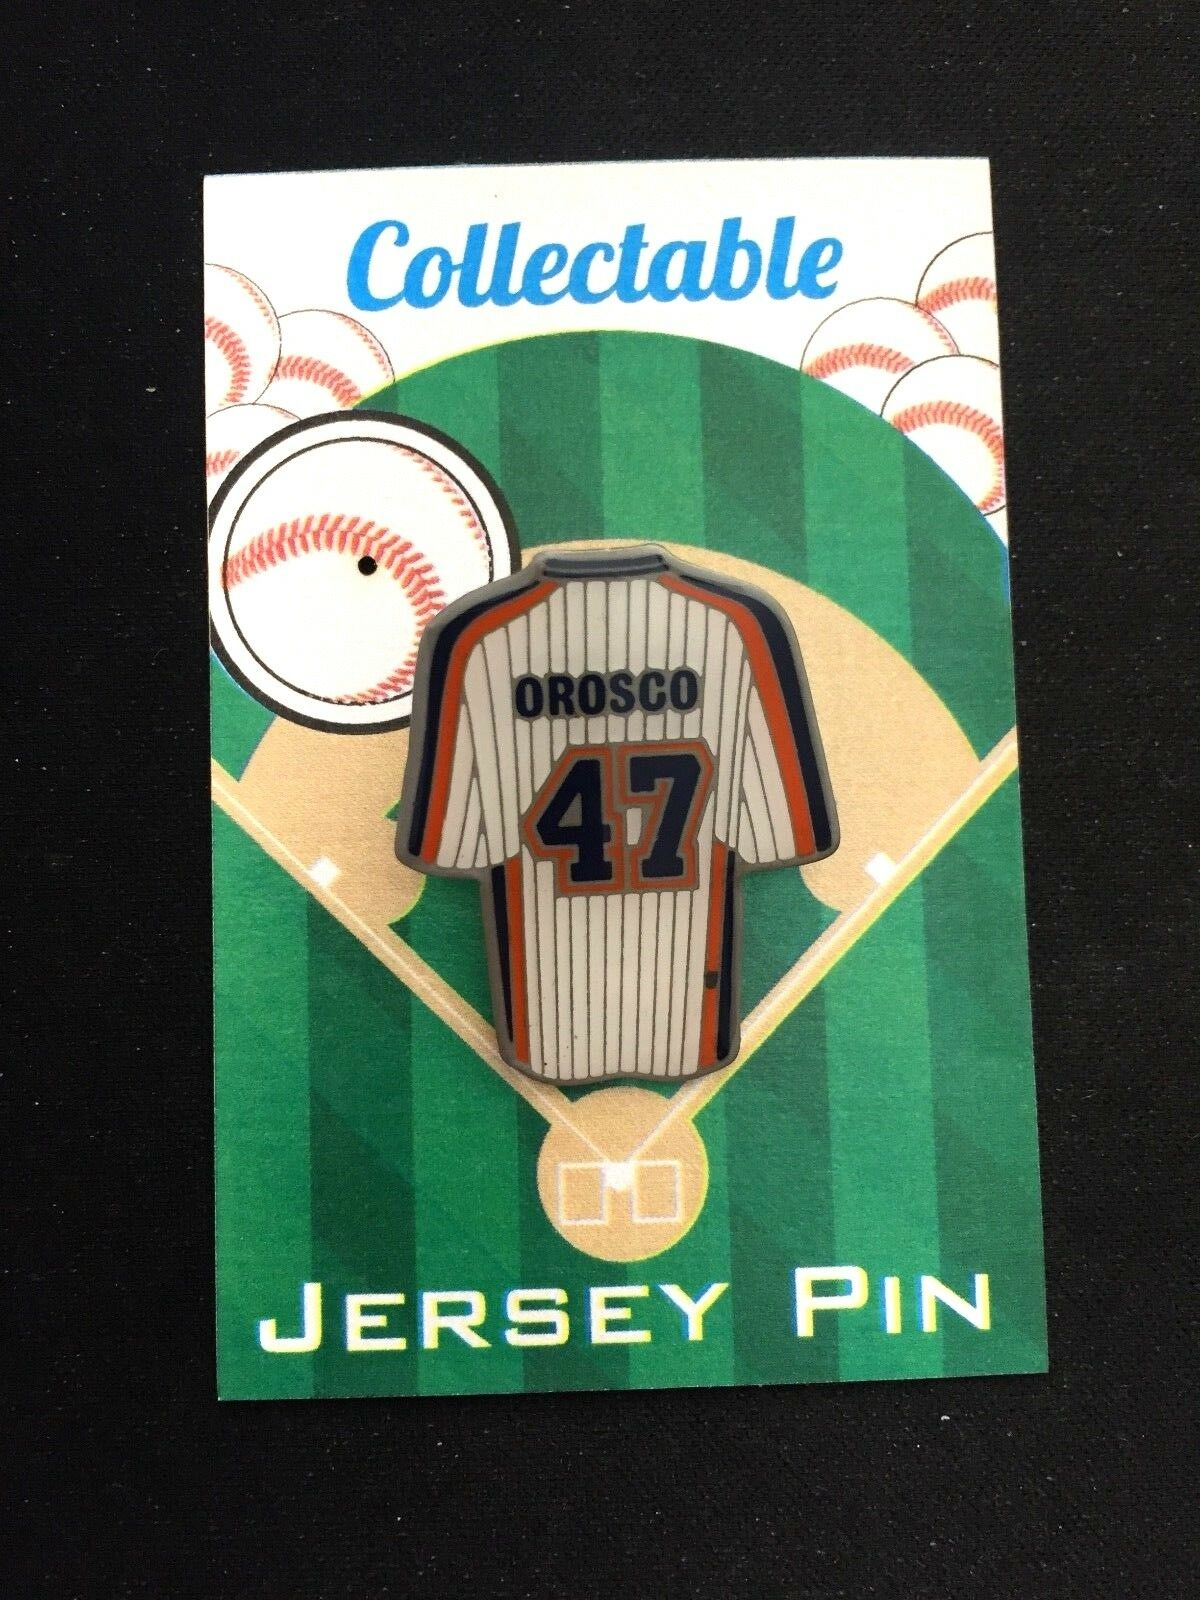 New York Mets Jesse Goldsco Revers Pin-Collectable-1986 Pin-Collectable-1986 Pin-Collectable-1986 World Series Champions fc39e2